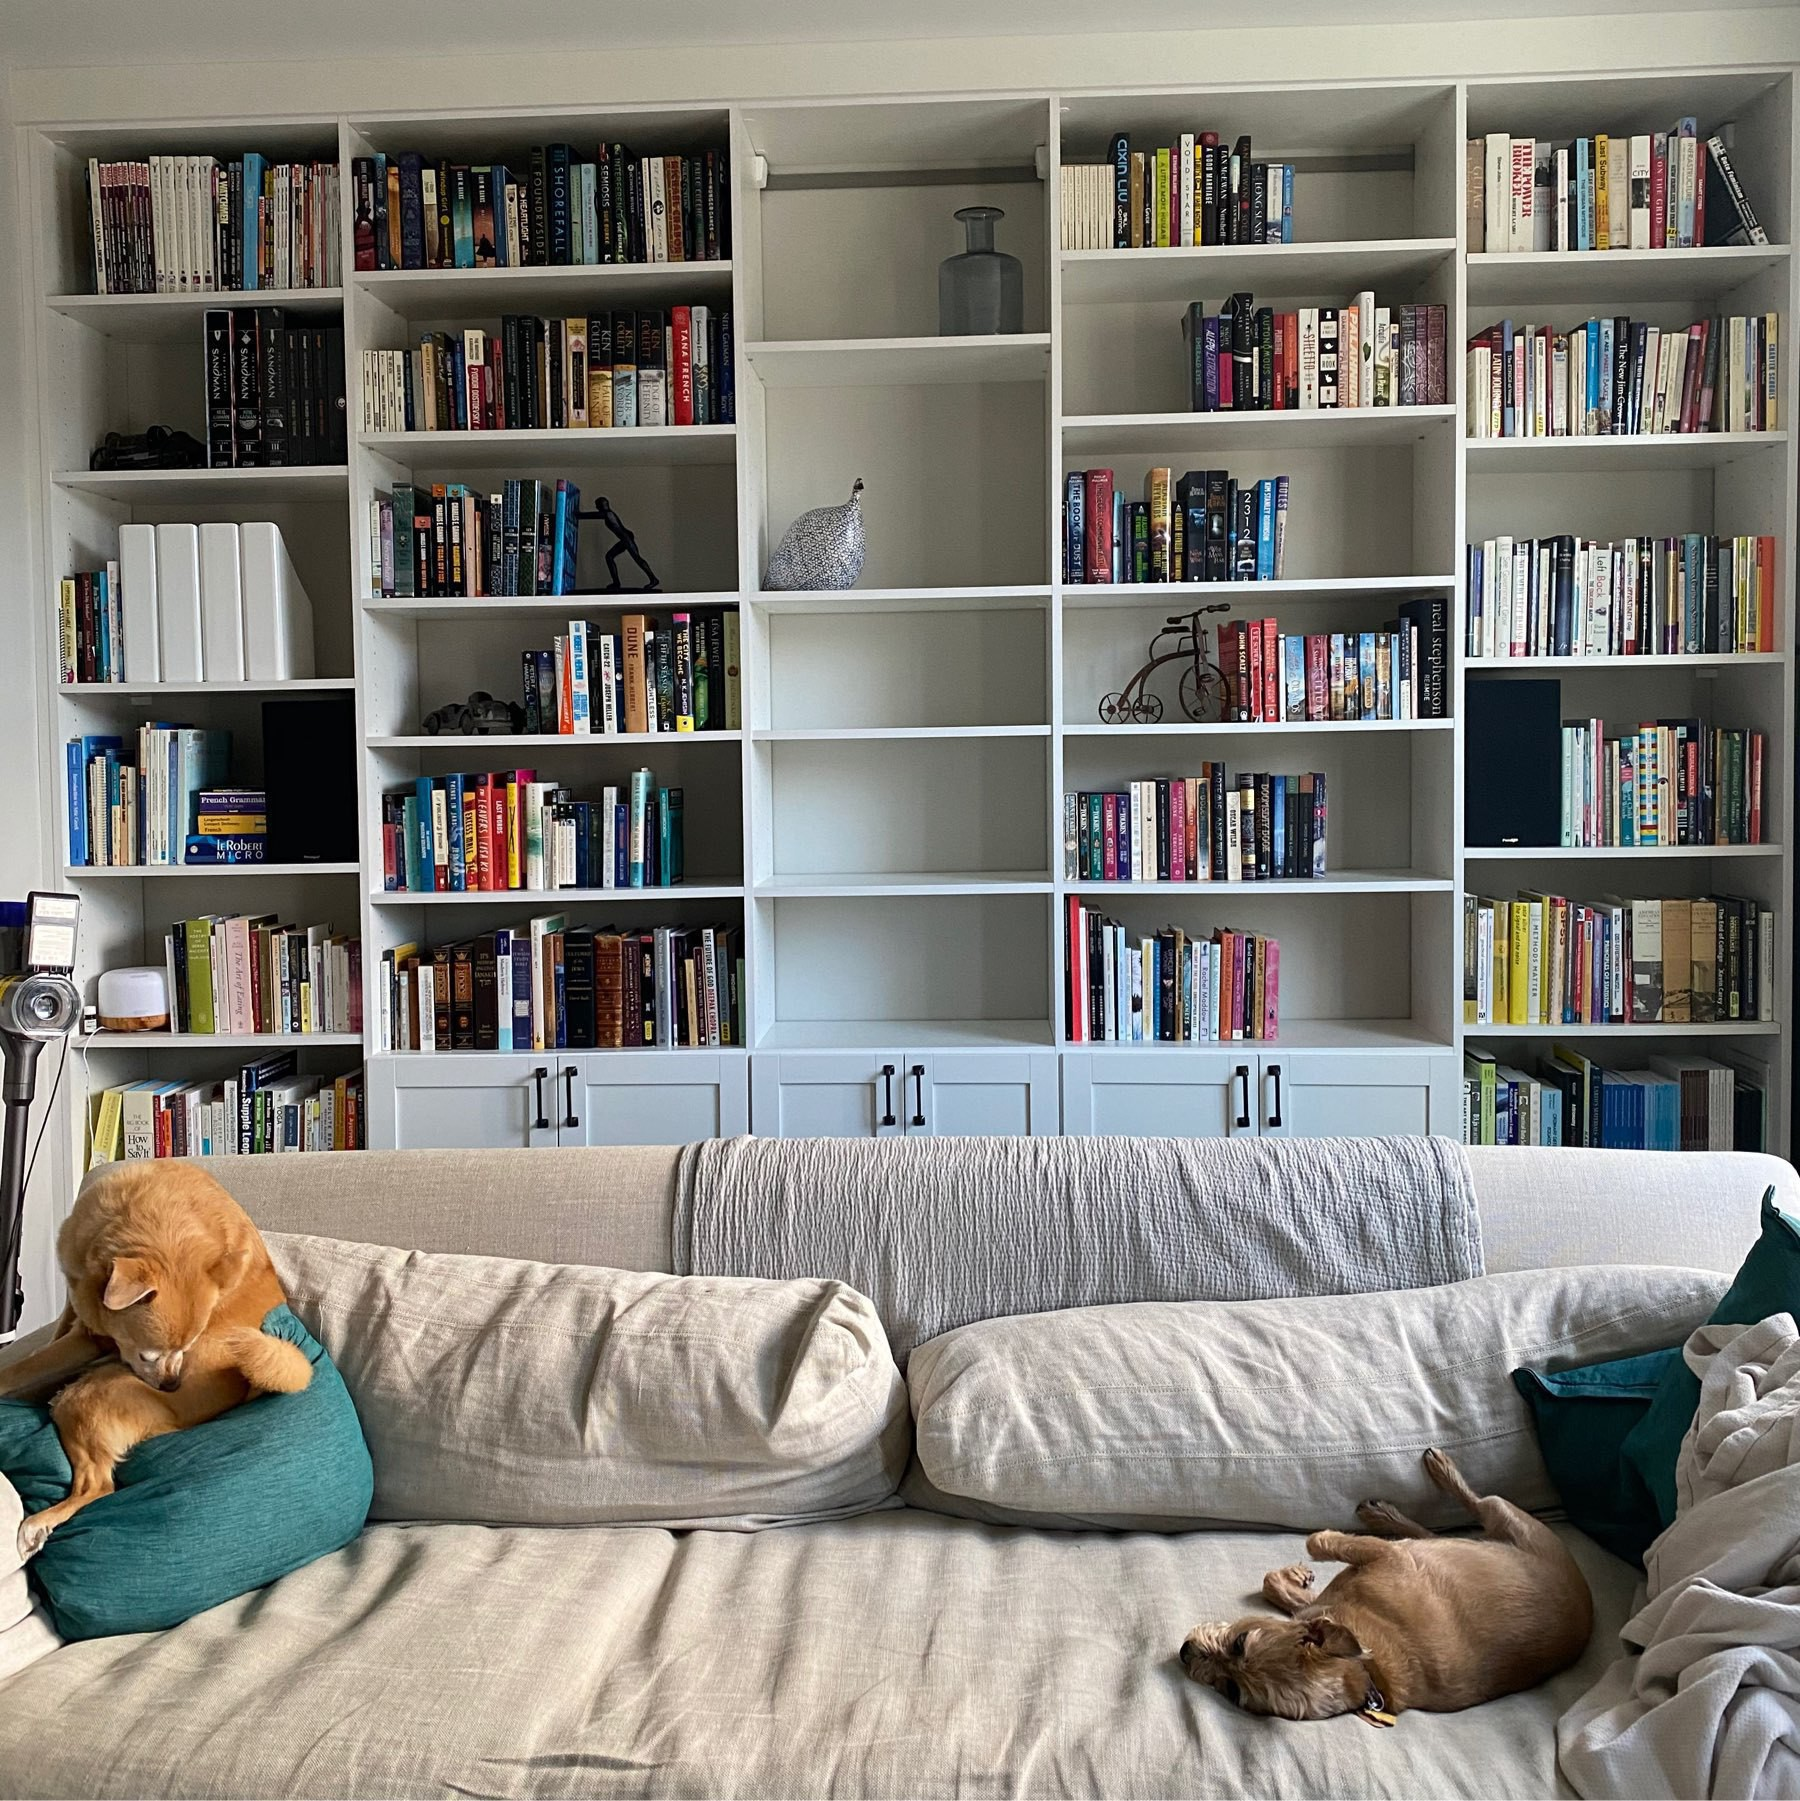 Built-in bookshelves with the books spread throughout